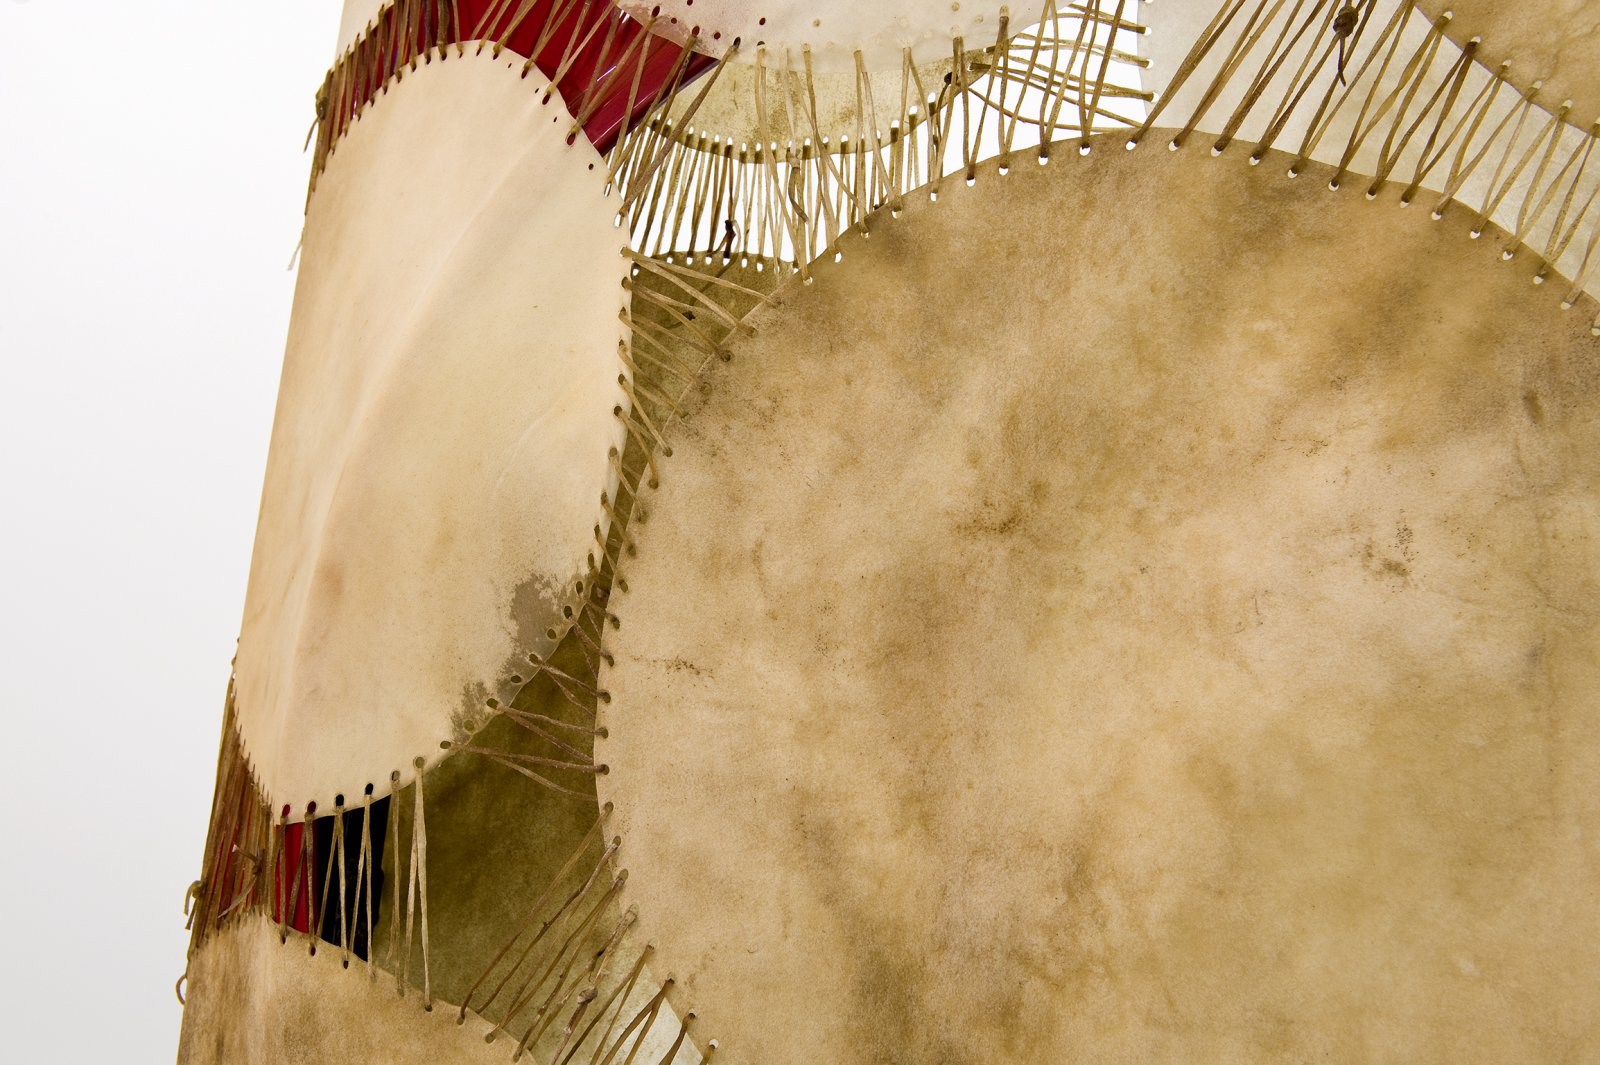 Brian Jungen, The Men of My Family (detail), 2010, moose and deer hide, car fenders, chest freezer, steel 106 x 48 x 30 in. (269 x 122 x 76 cm) by Brian Jungen